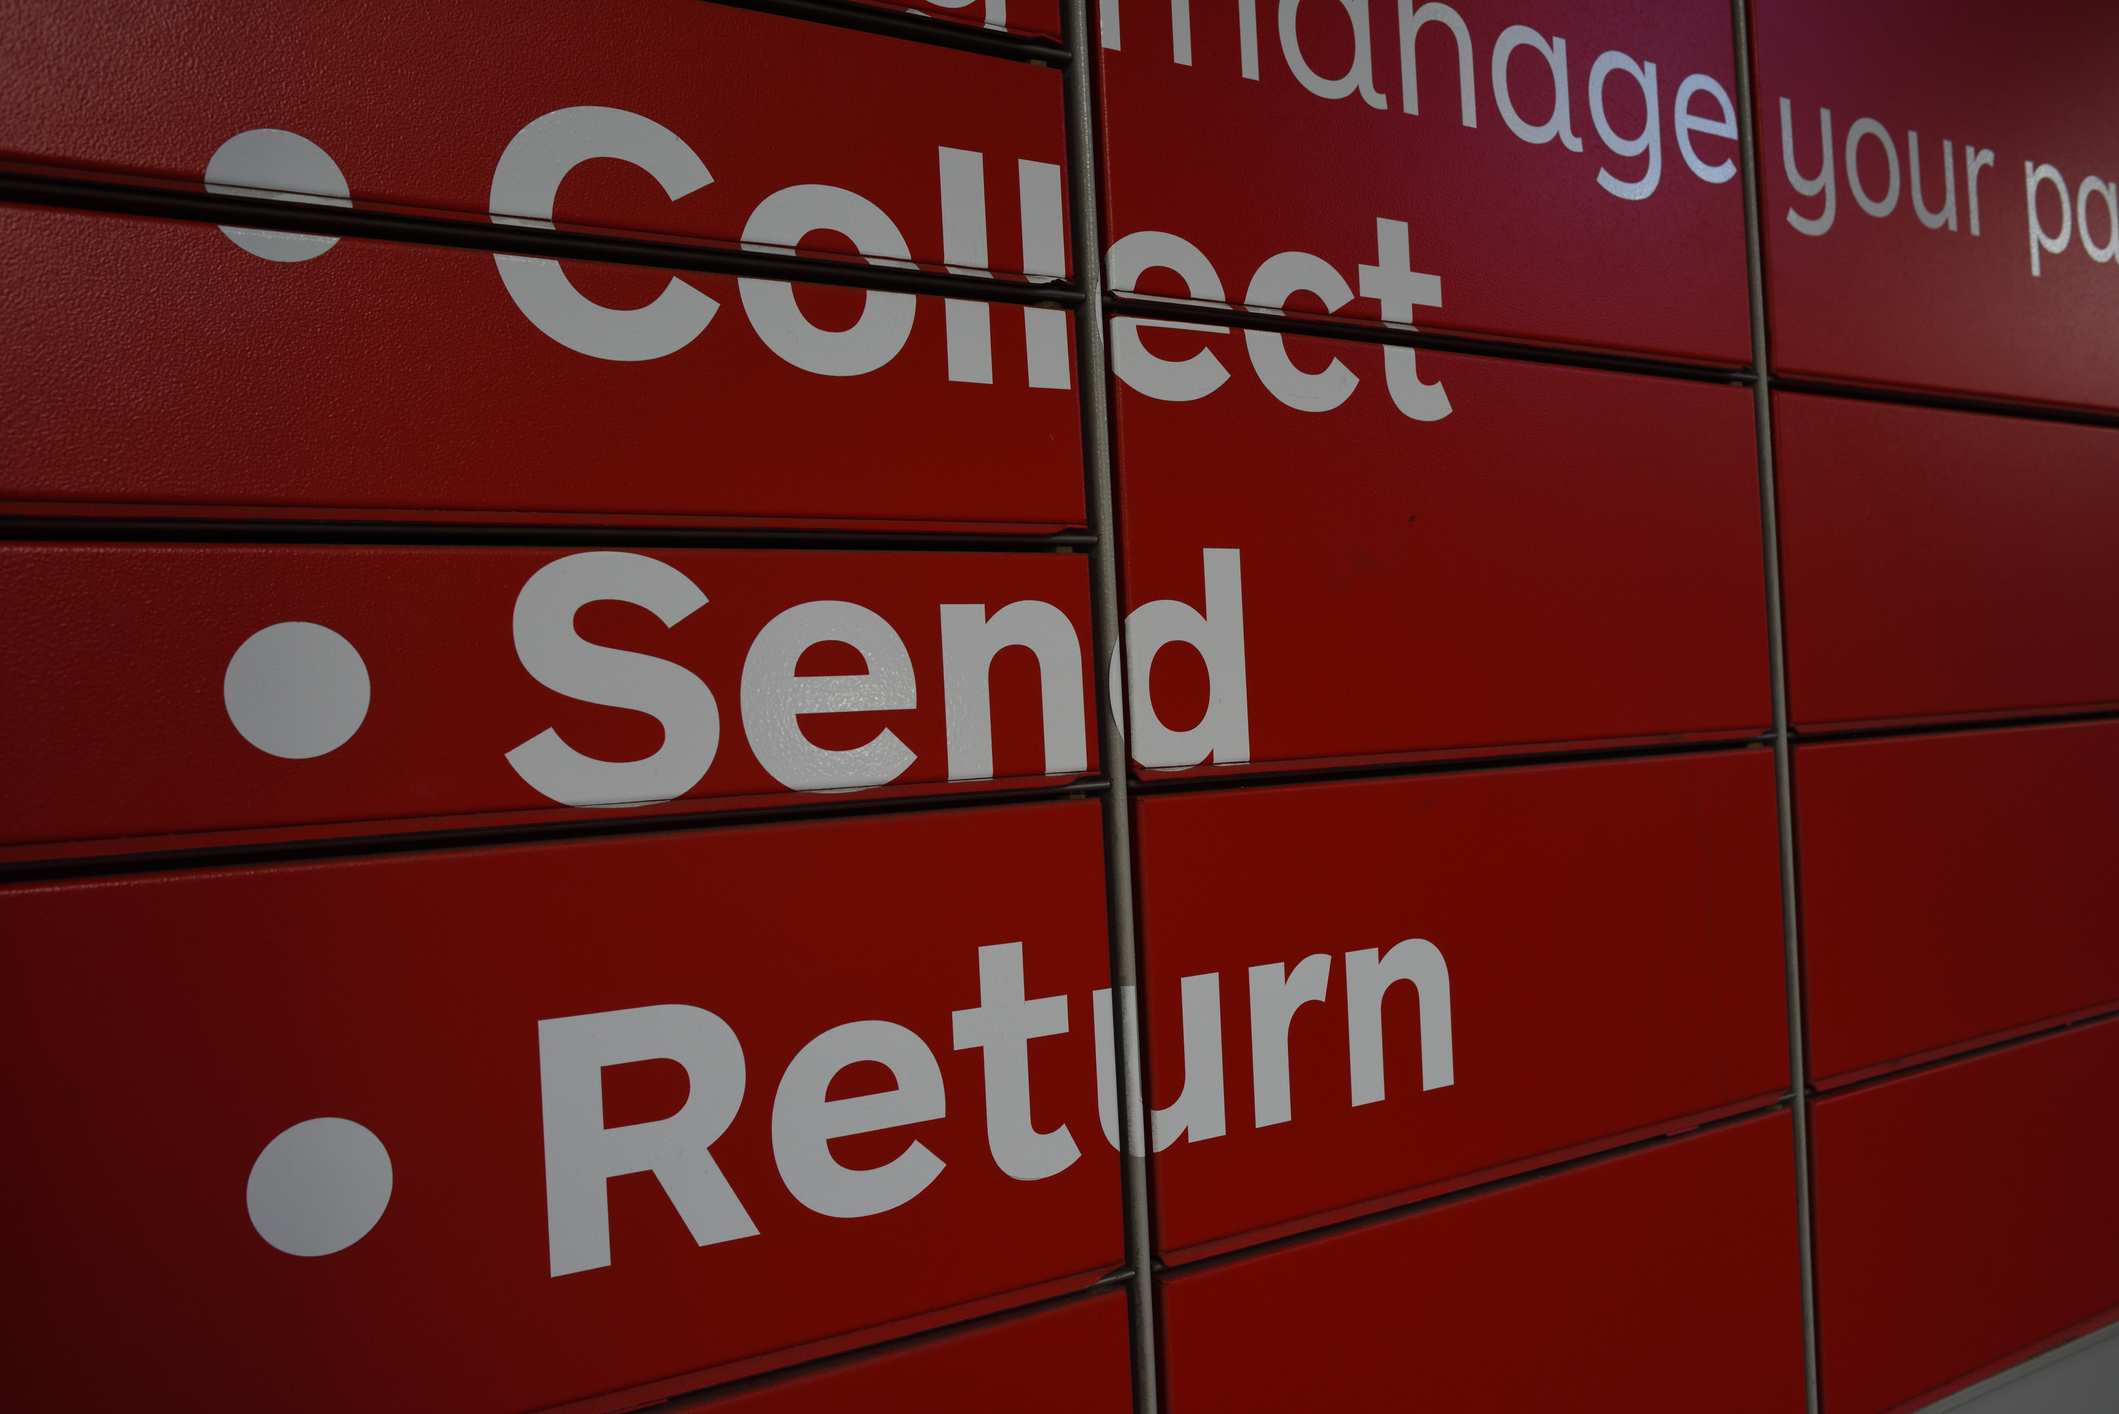 Posties demand expanded investigation as they 'struggle day in, day out'